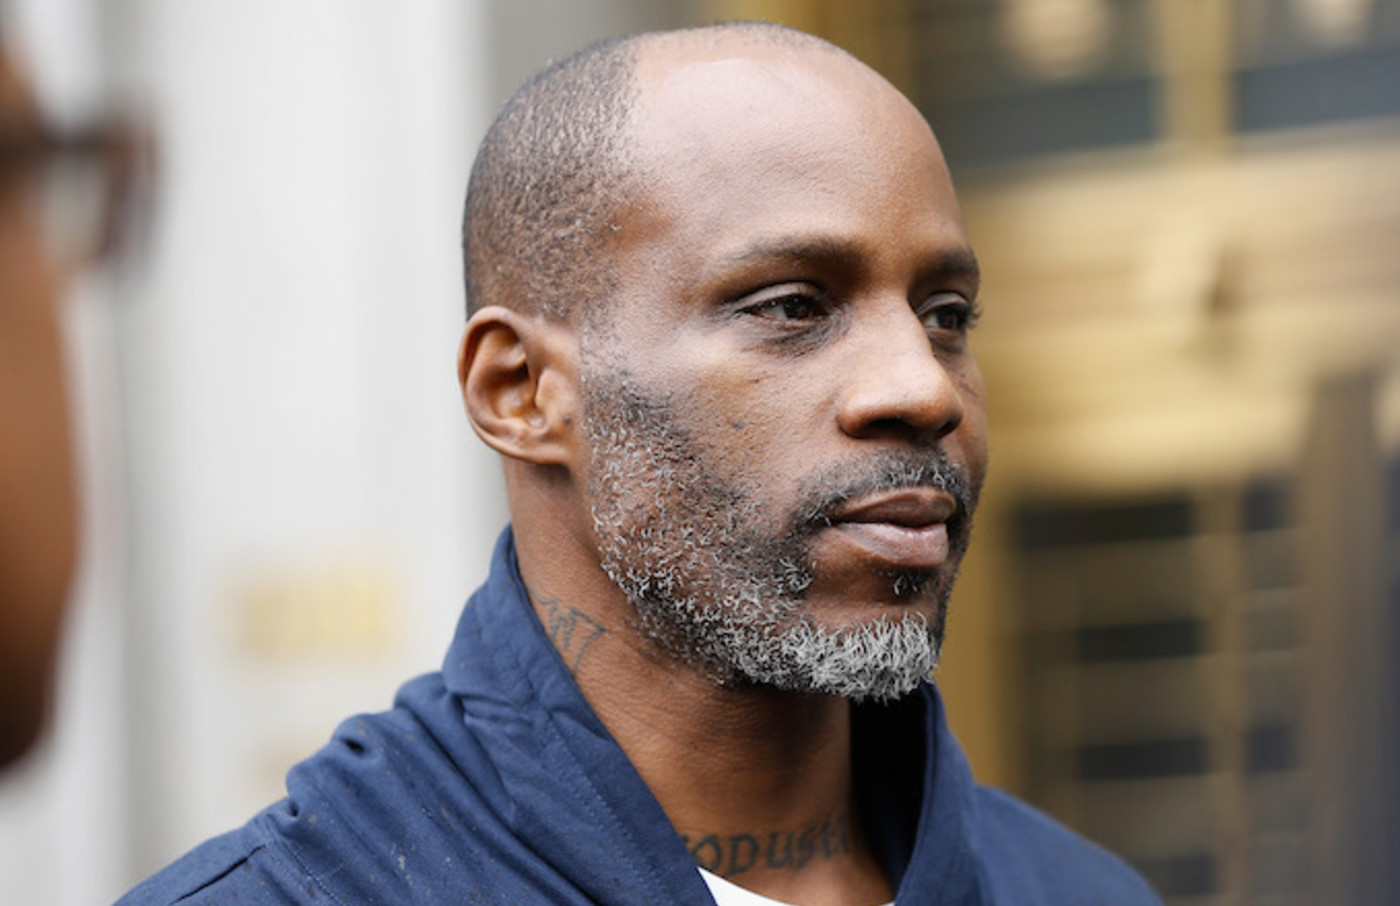 Rapper DMX is arraigned in court after tax evasion charges.